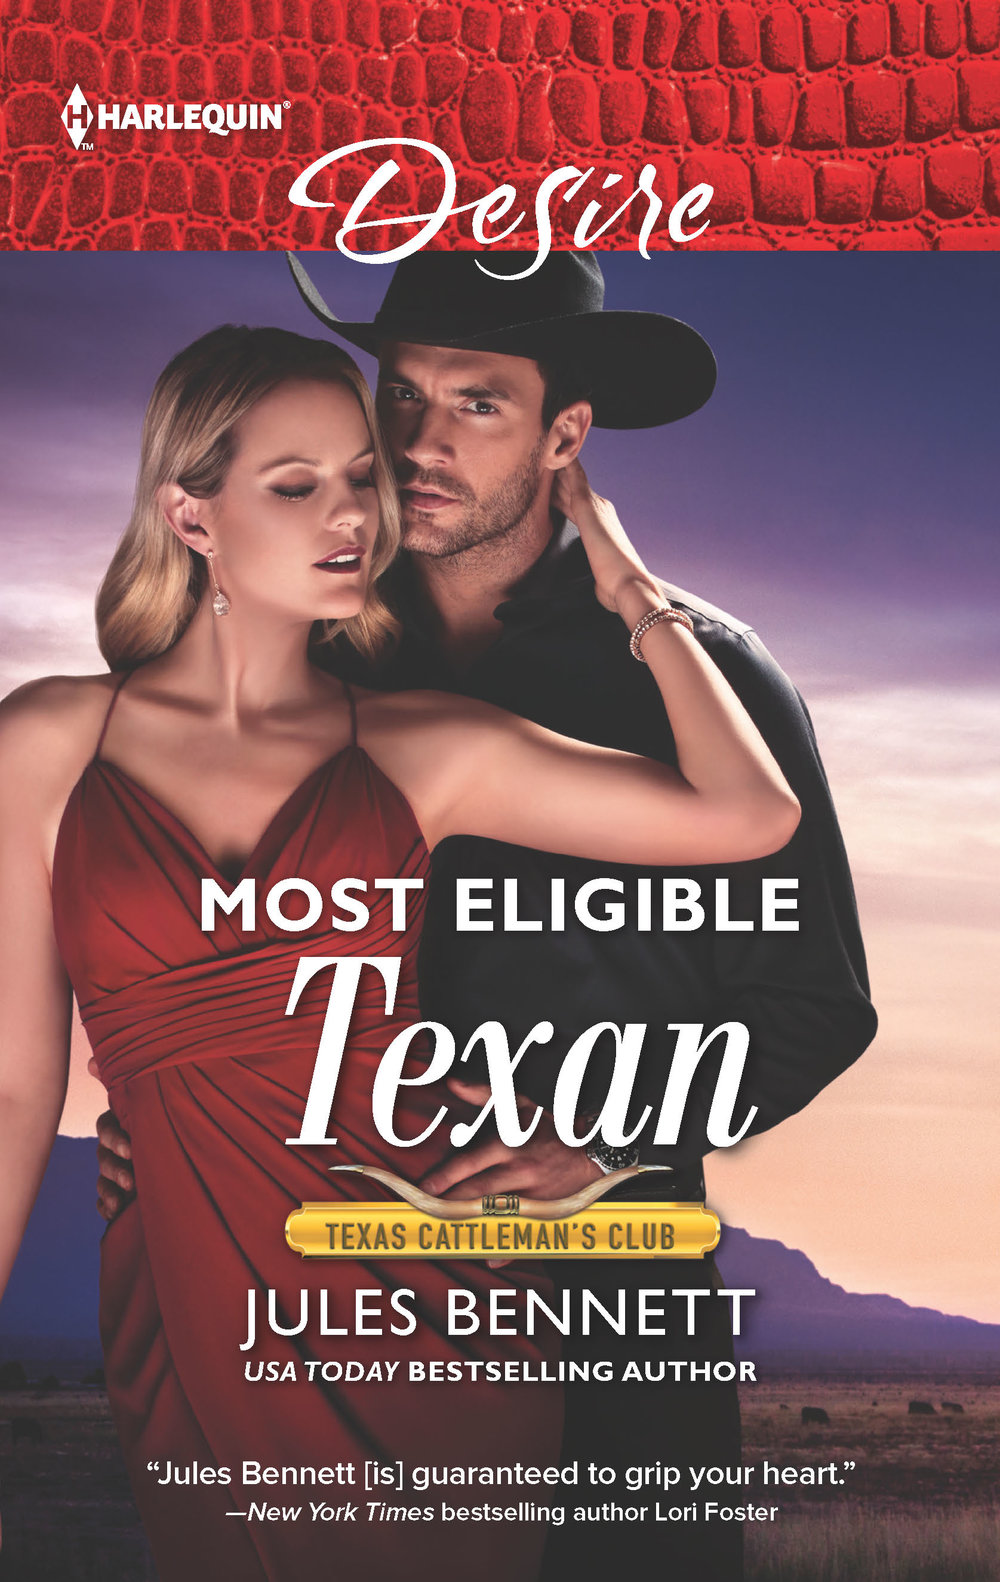 Jules Bennett Most Eligible Texan.jpg